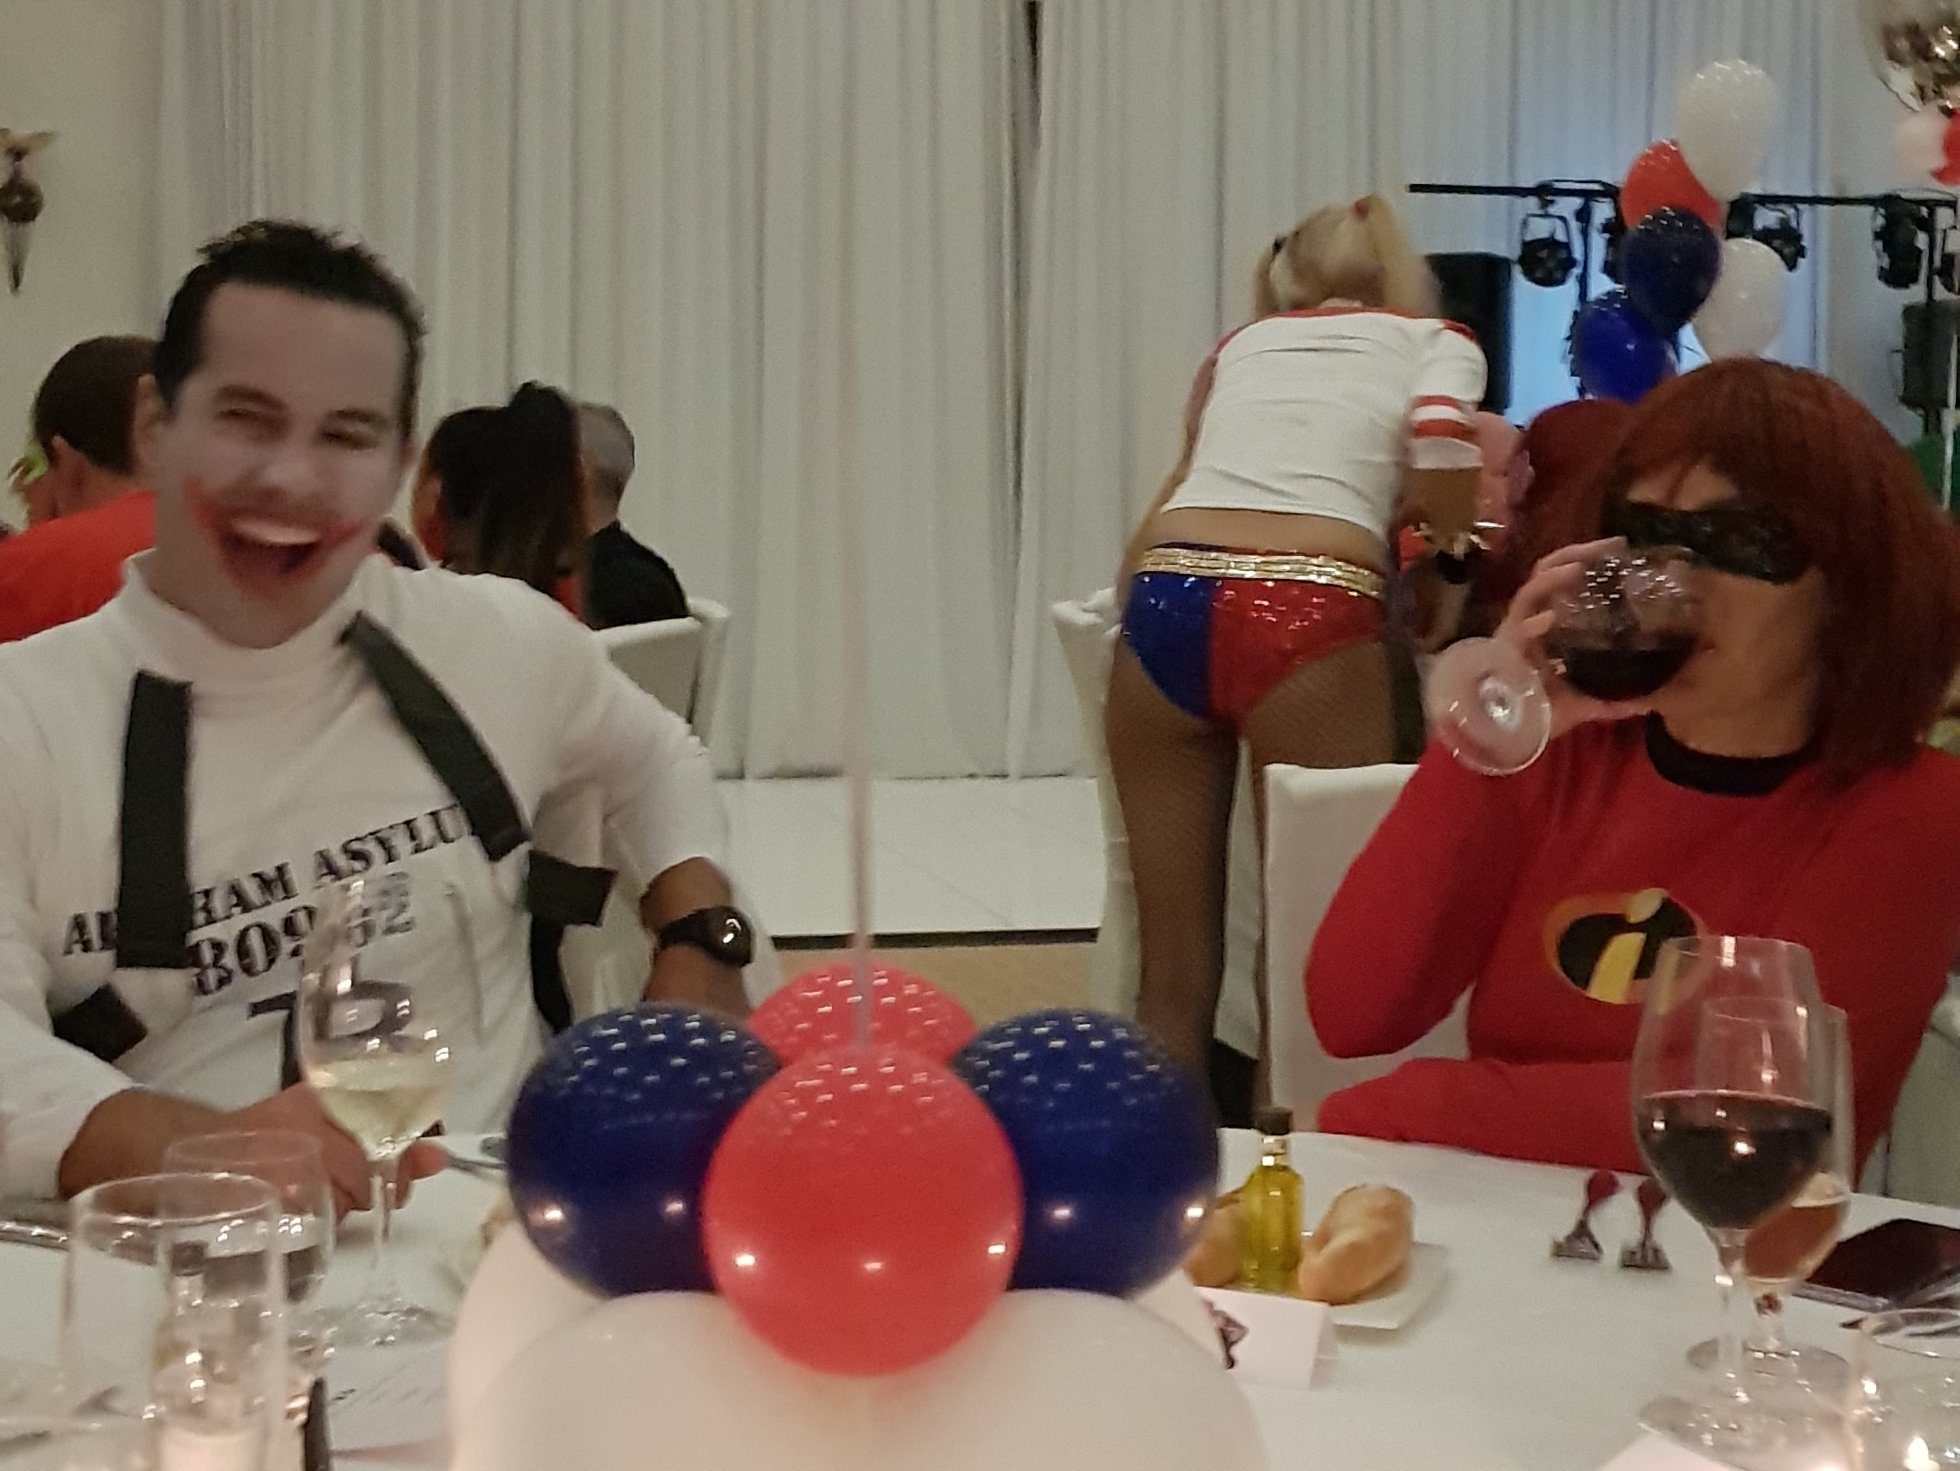 cosplay party with guests dressed as Harley Quinn and Joker